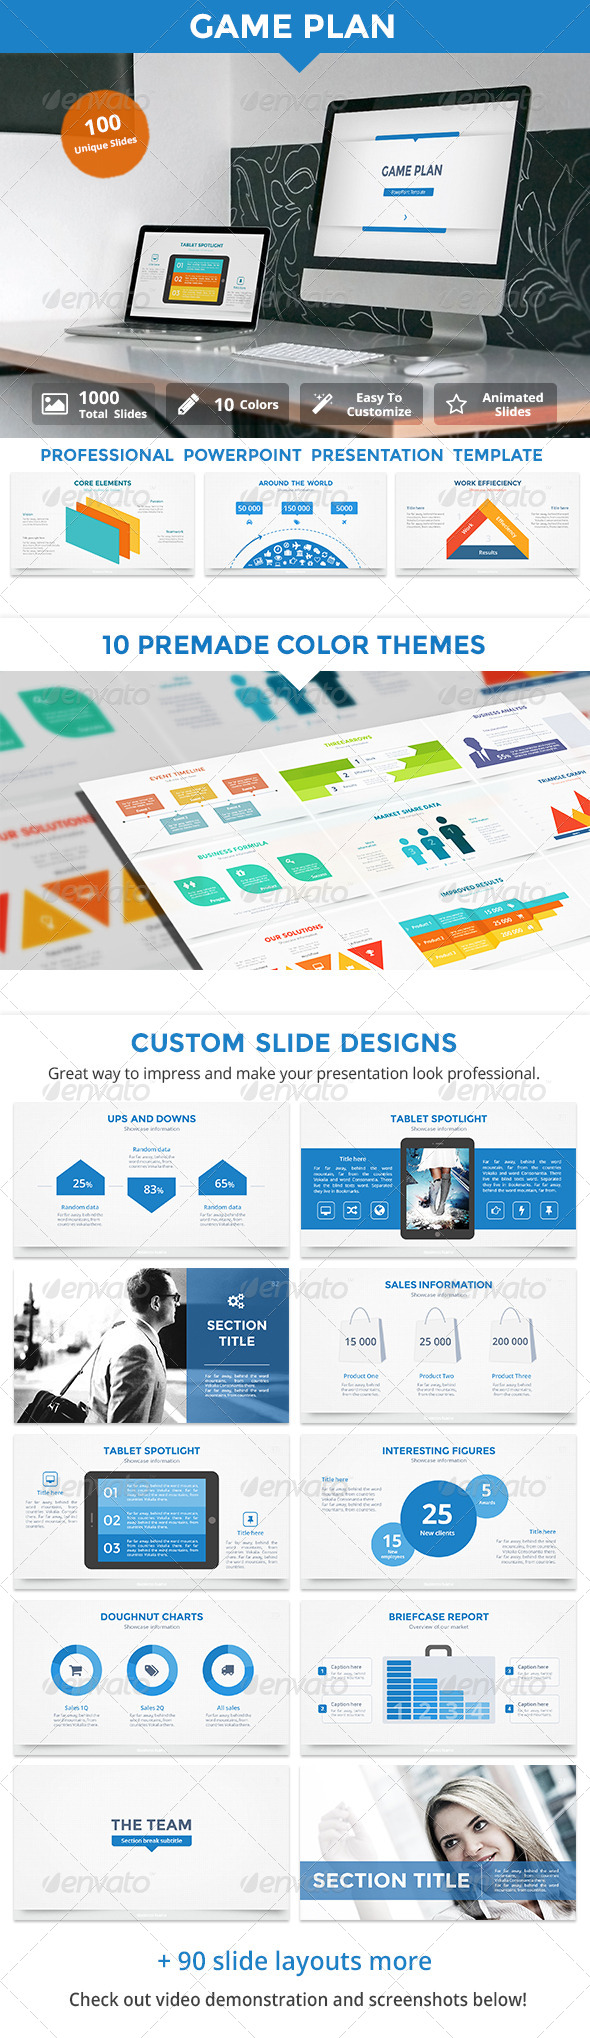 GraphicRiver Game Plan v2 PowerPoint Template 8320213